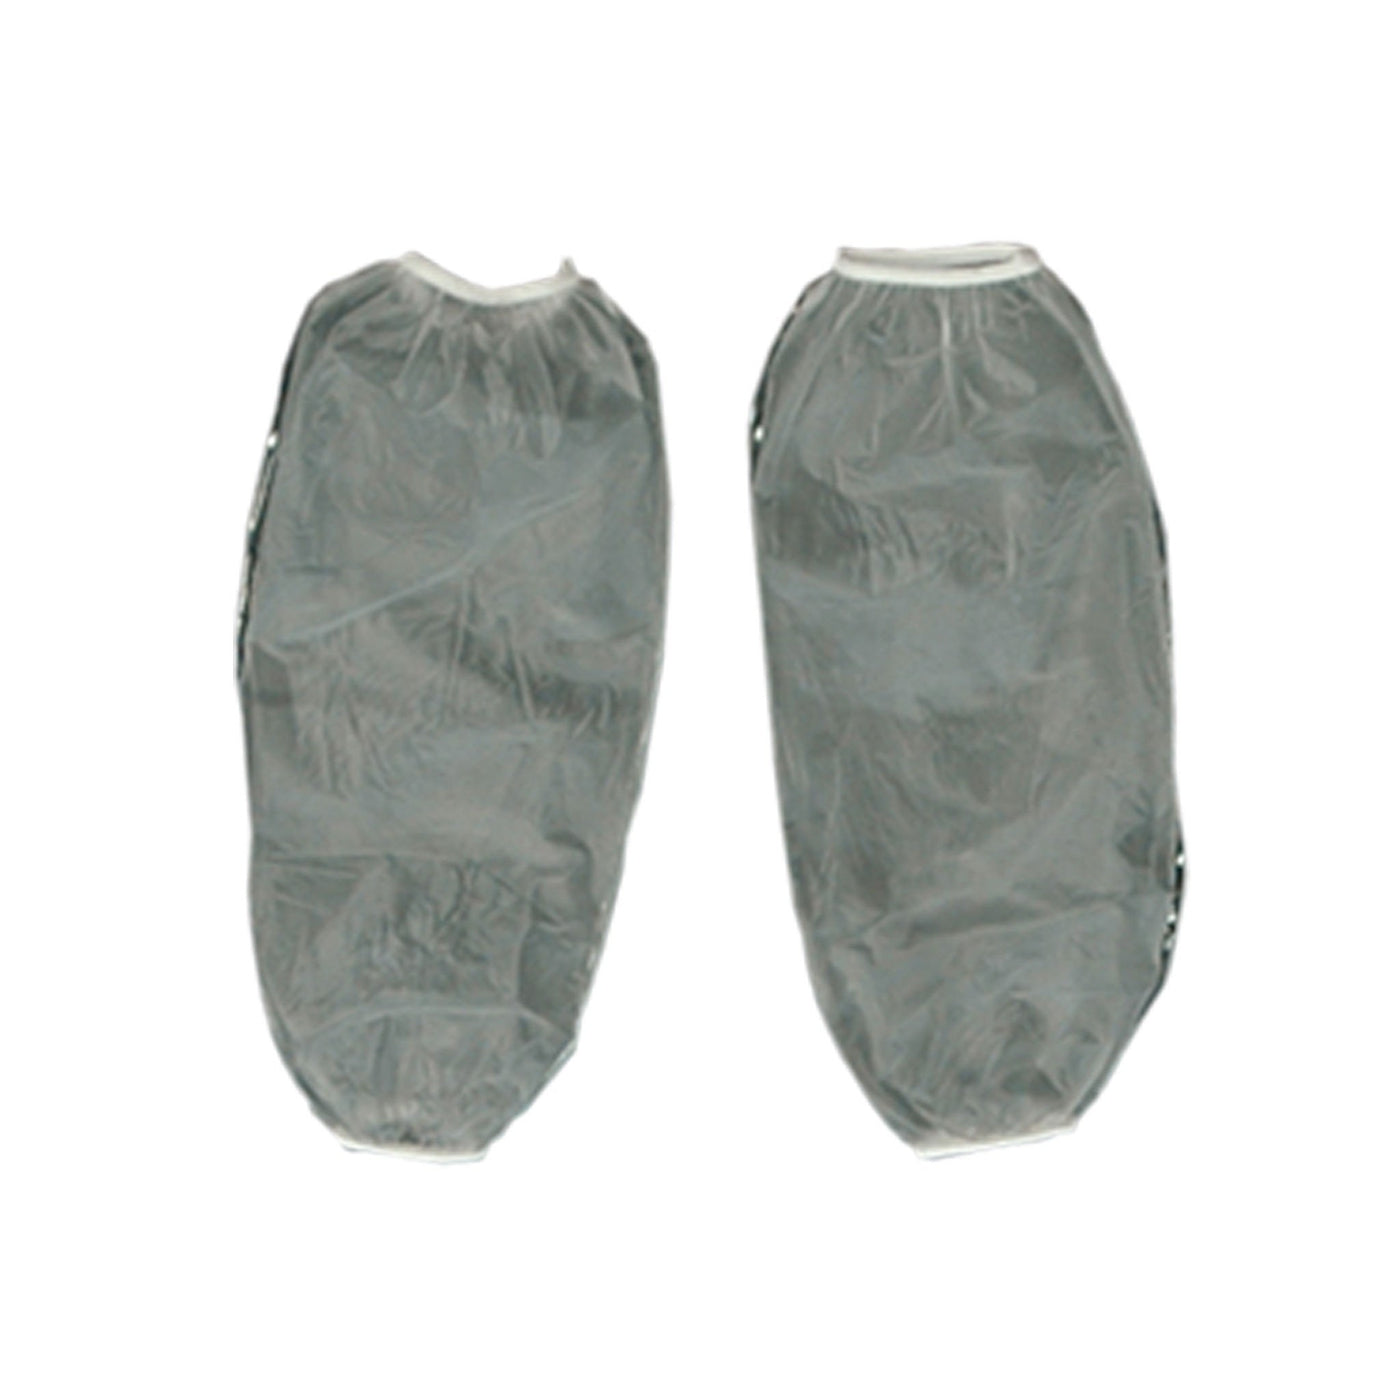 Plastic Undergarments - Sleeves-Laboratory Accessory-Mortech Manufacturing Company Inc. Quality Stainless Steel Autopsy, Morgue, Funeral Home, Necropsy, Veterinary / Anatomy, Dissection Equipment and Accessories